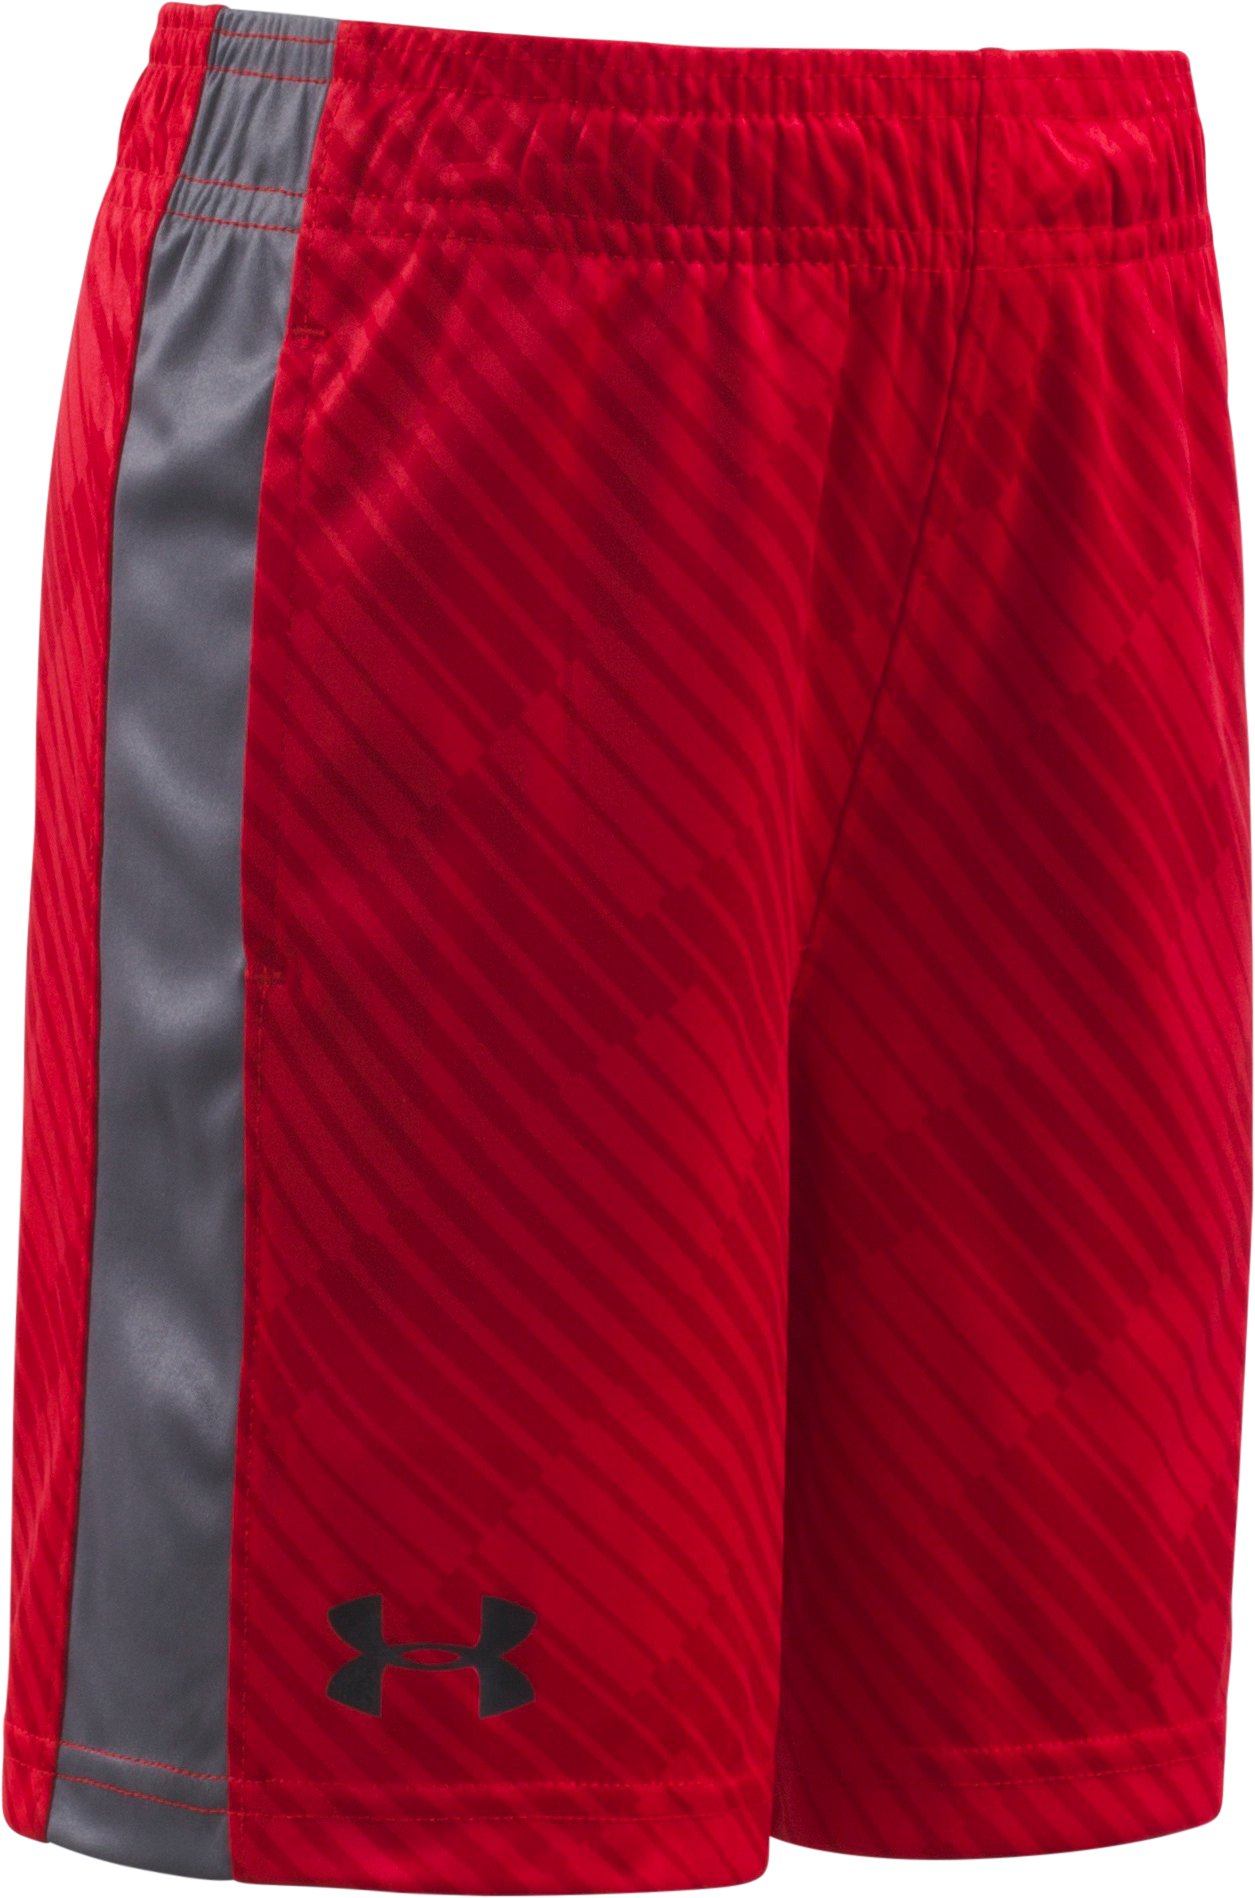 Boys' Toddler UA Tilt Shift Eliminator Shorts, Red